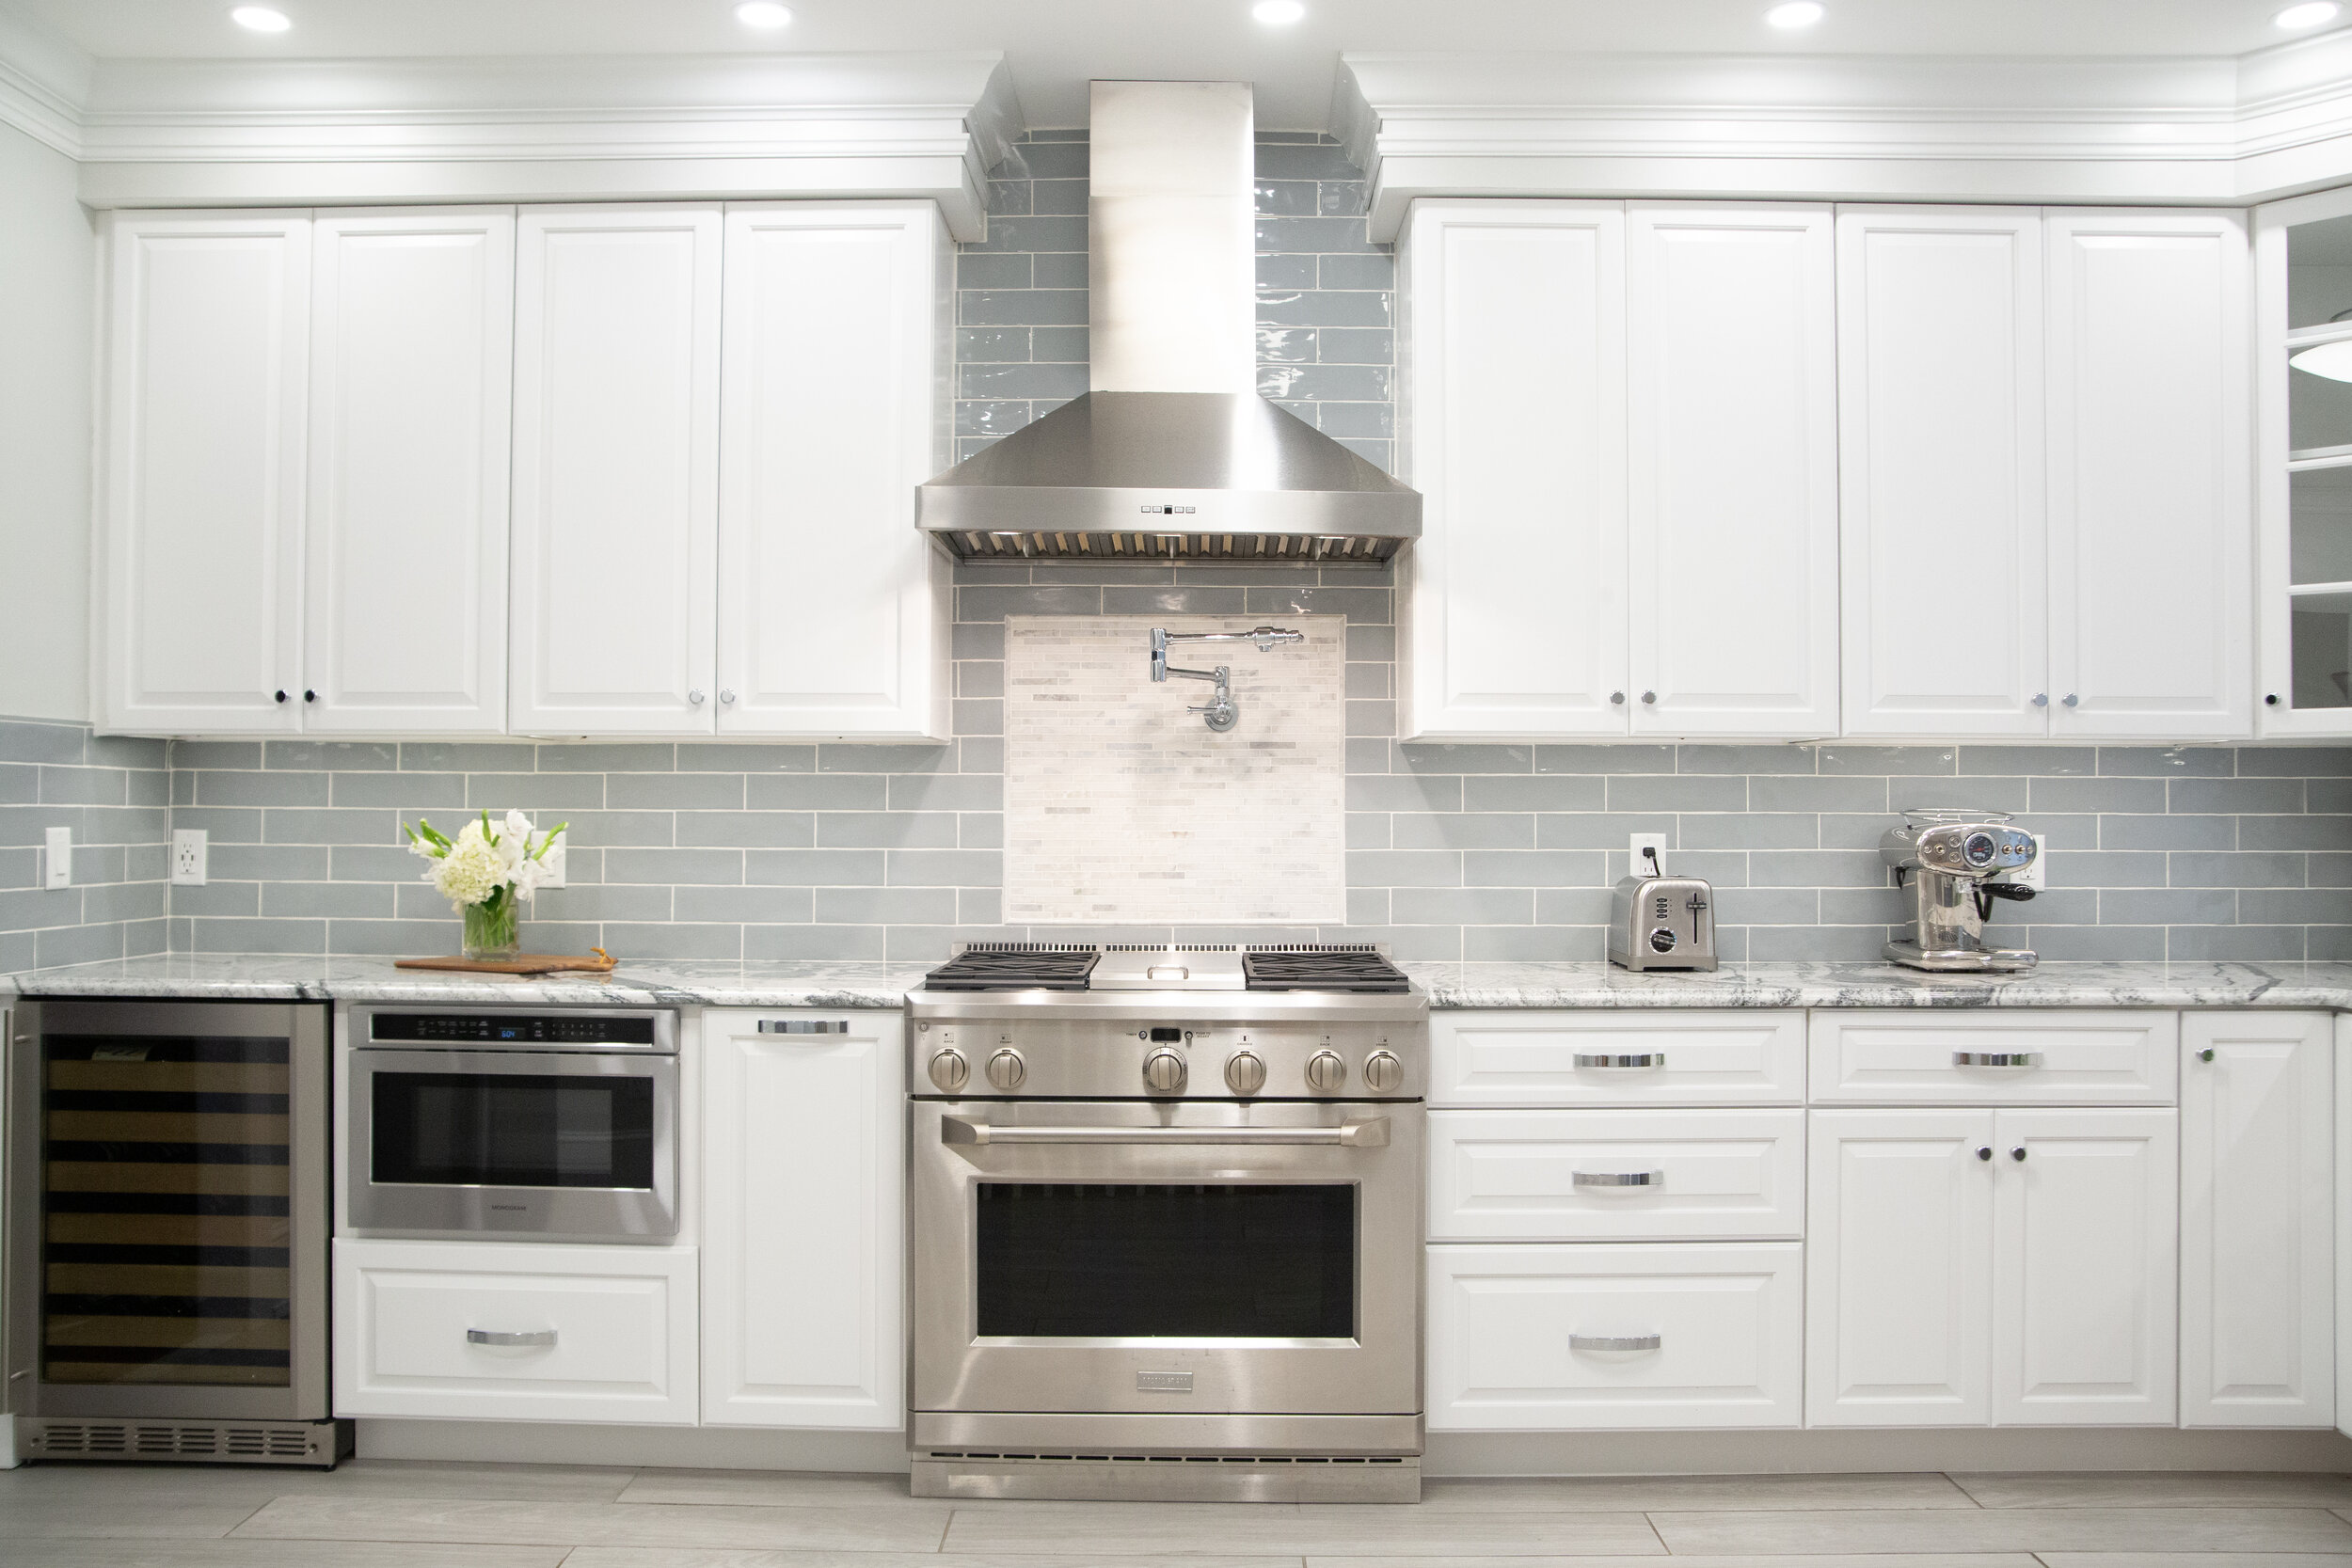 Project South Philadelphia Kitchen - A new classic kitchen for a friendly family.